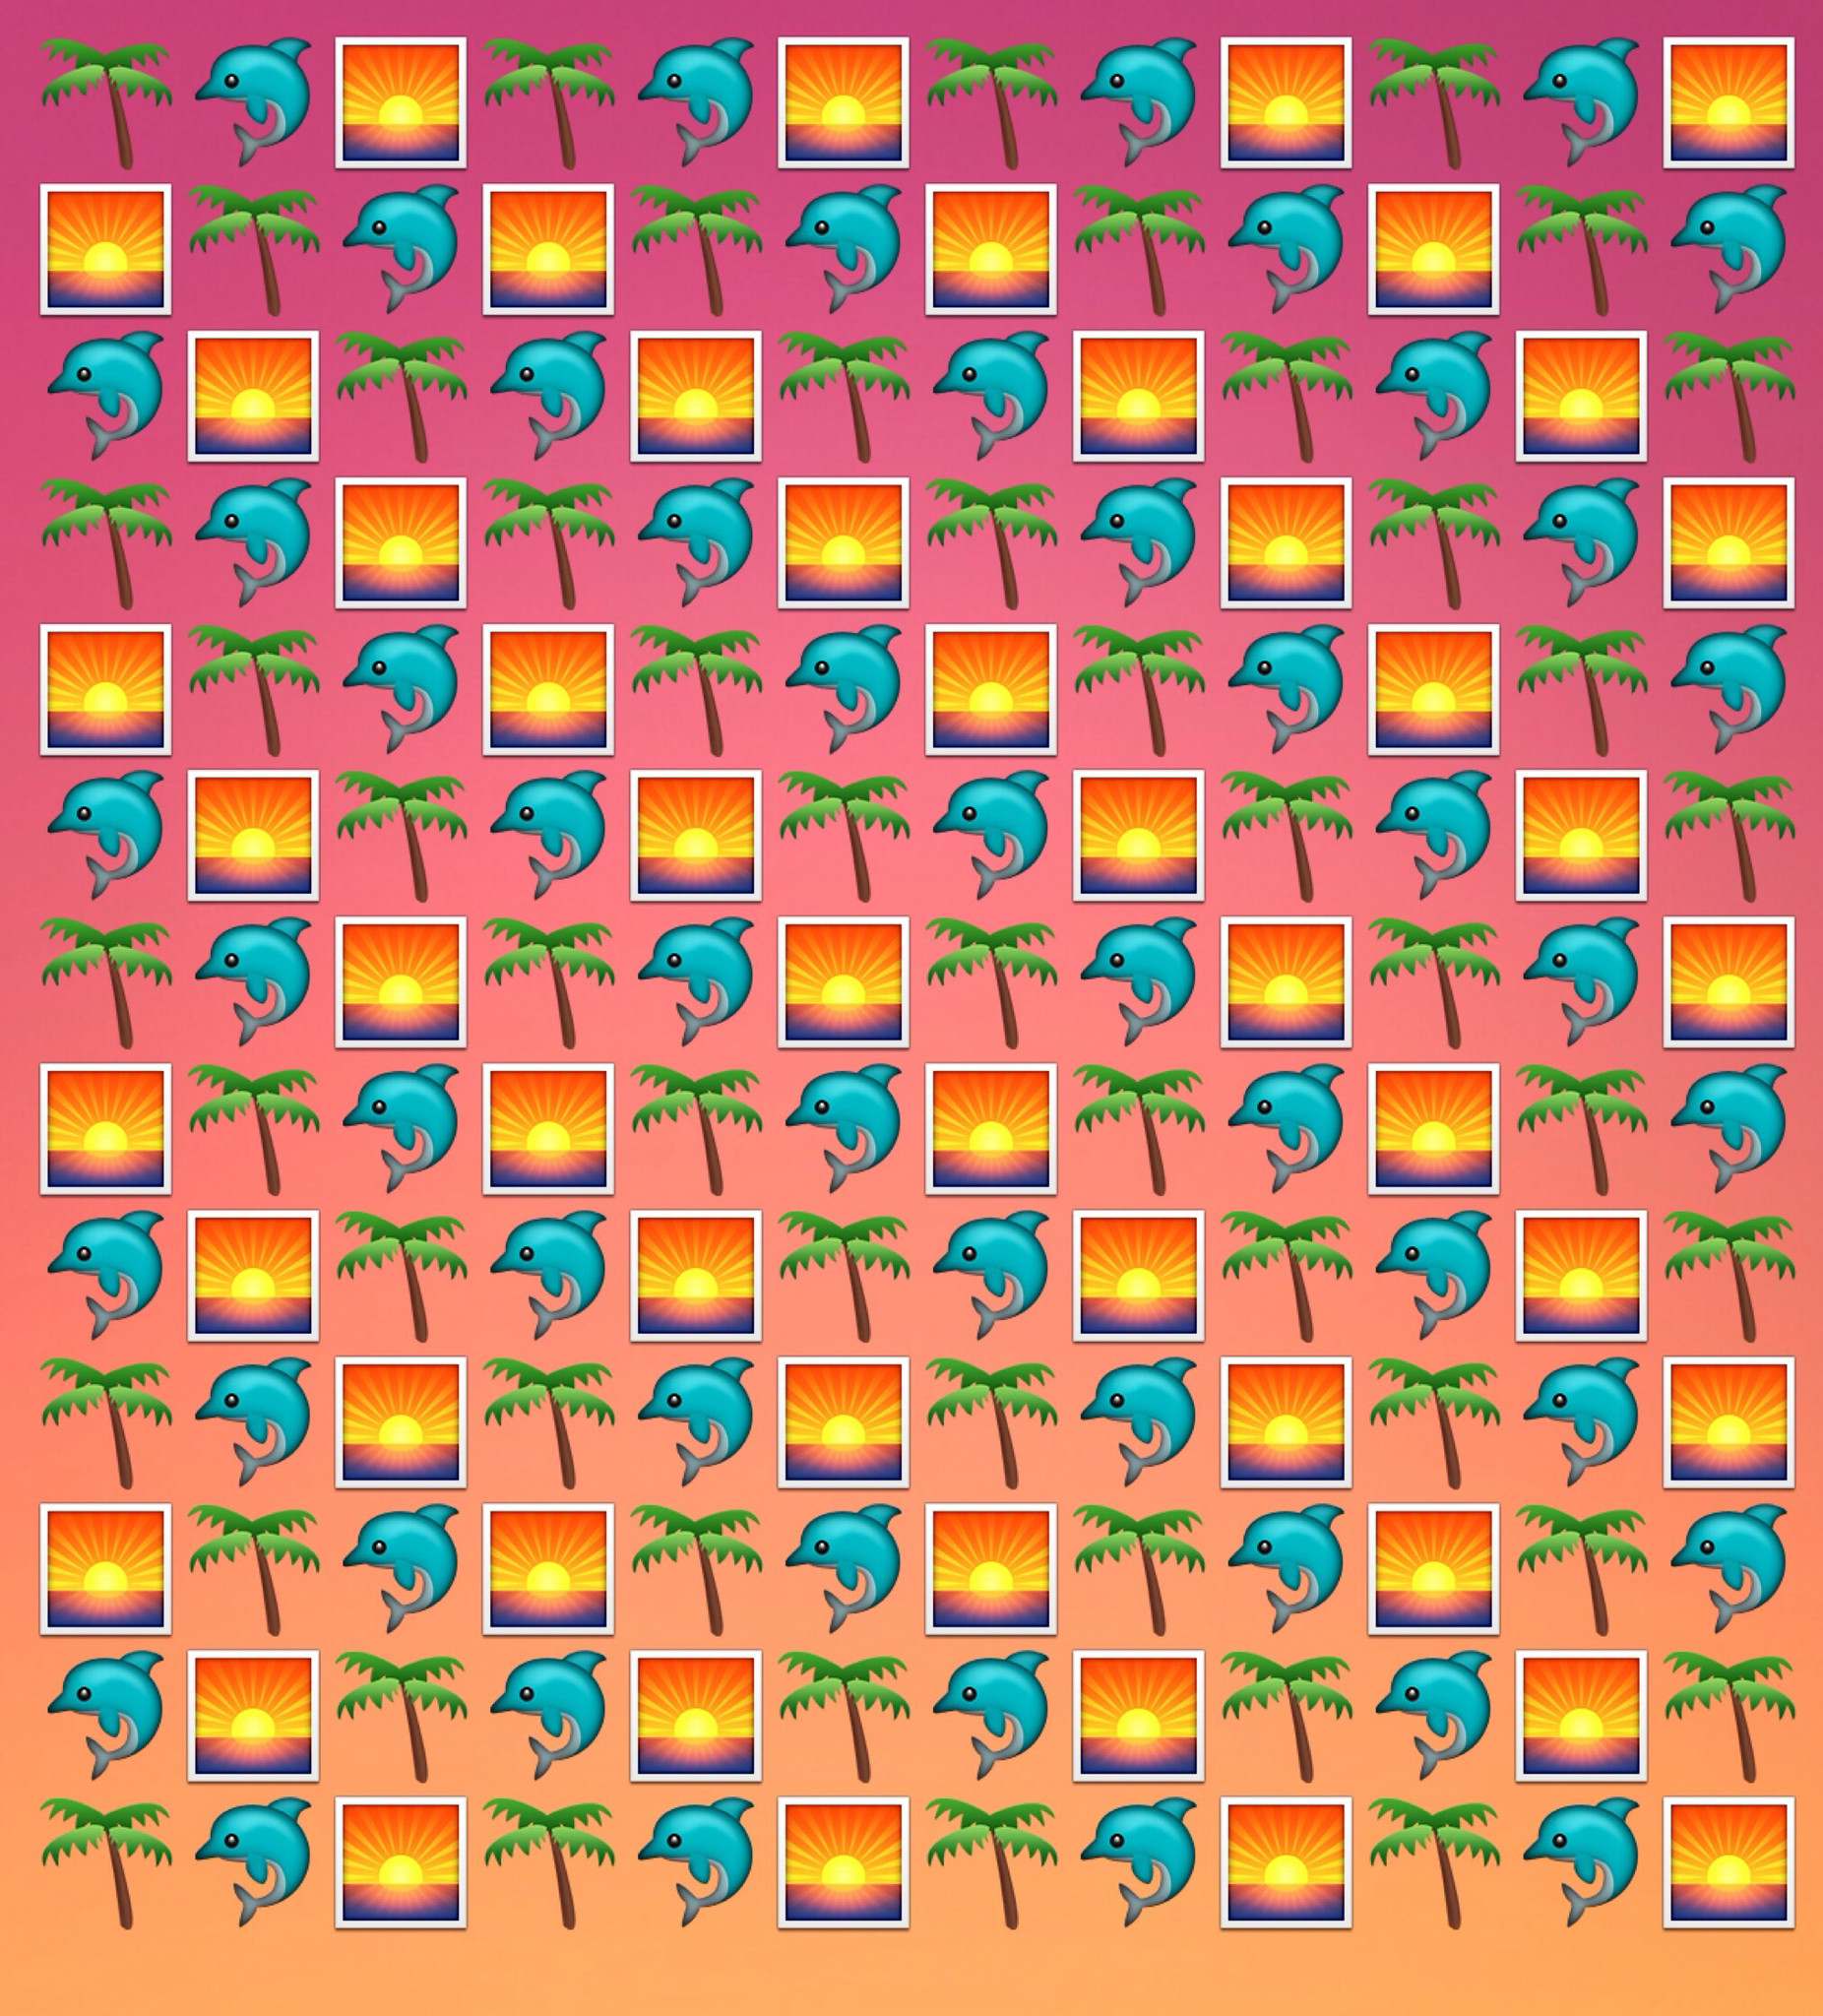 1852x2048 Emoji wallpaper background for desktop or phone ~ dolphins on a tropical  sunset beach